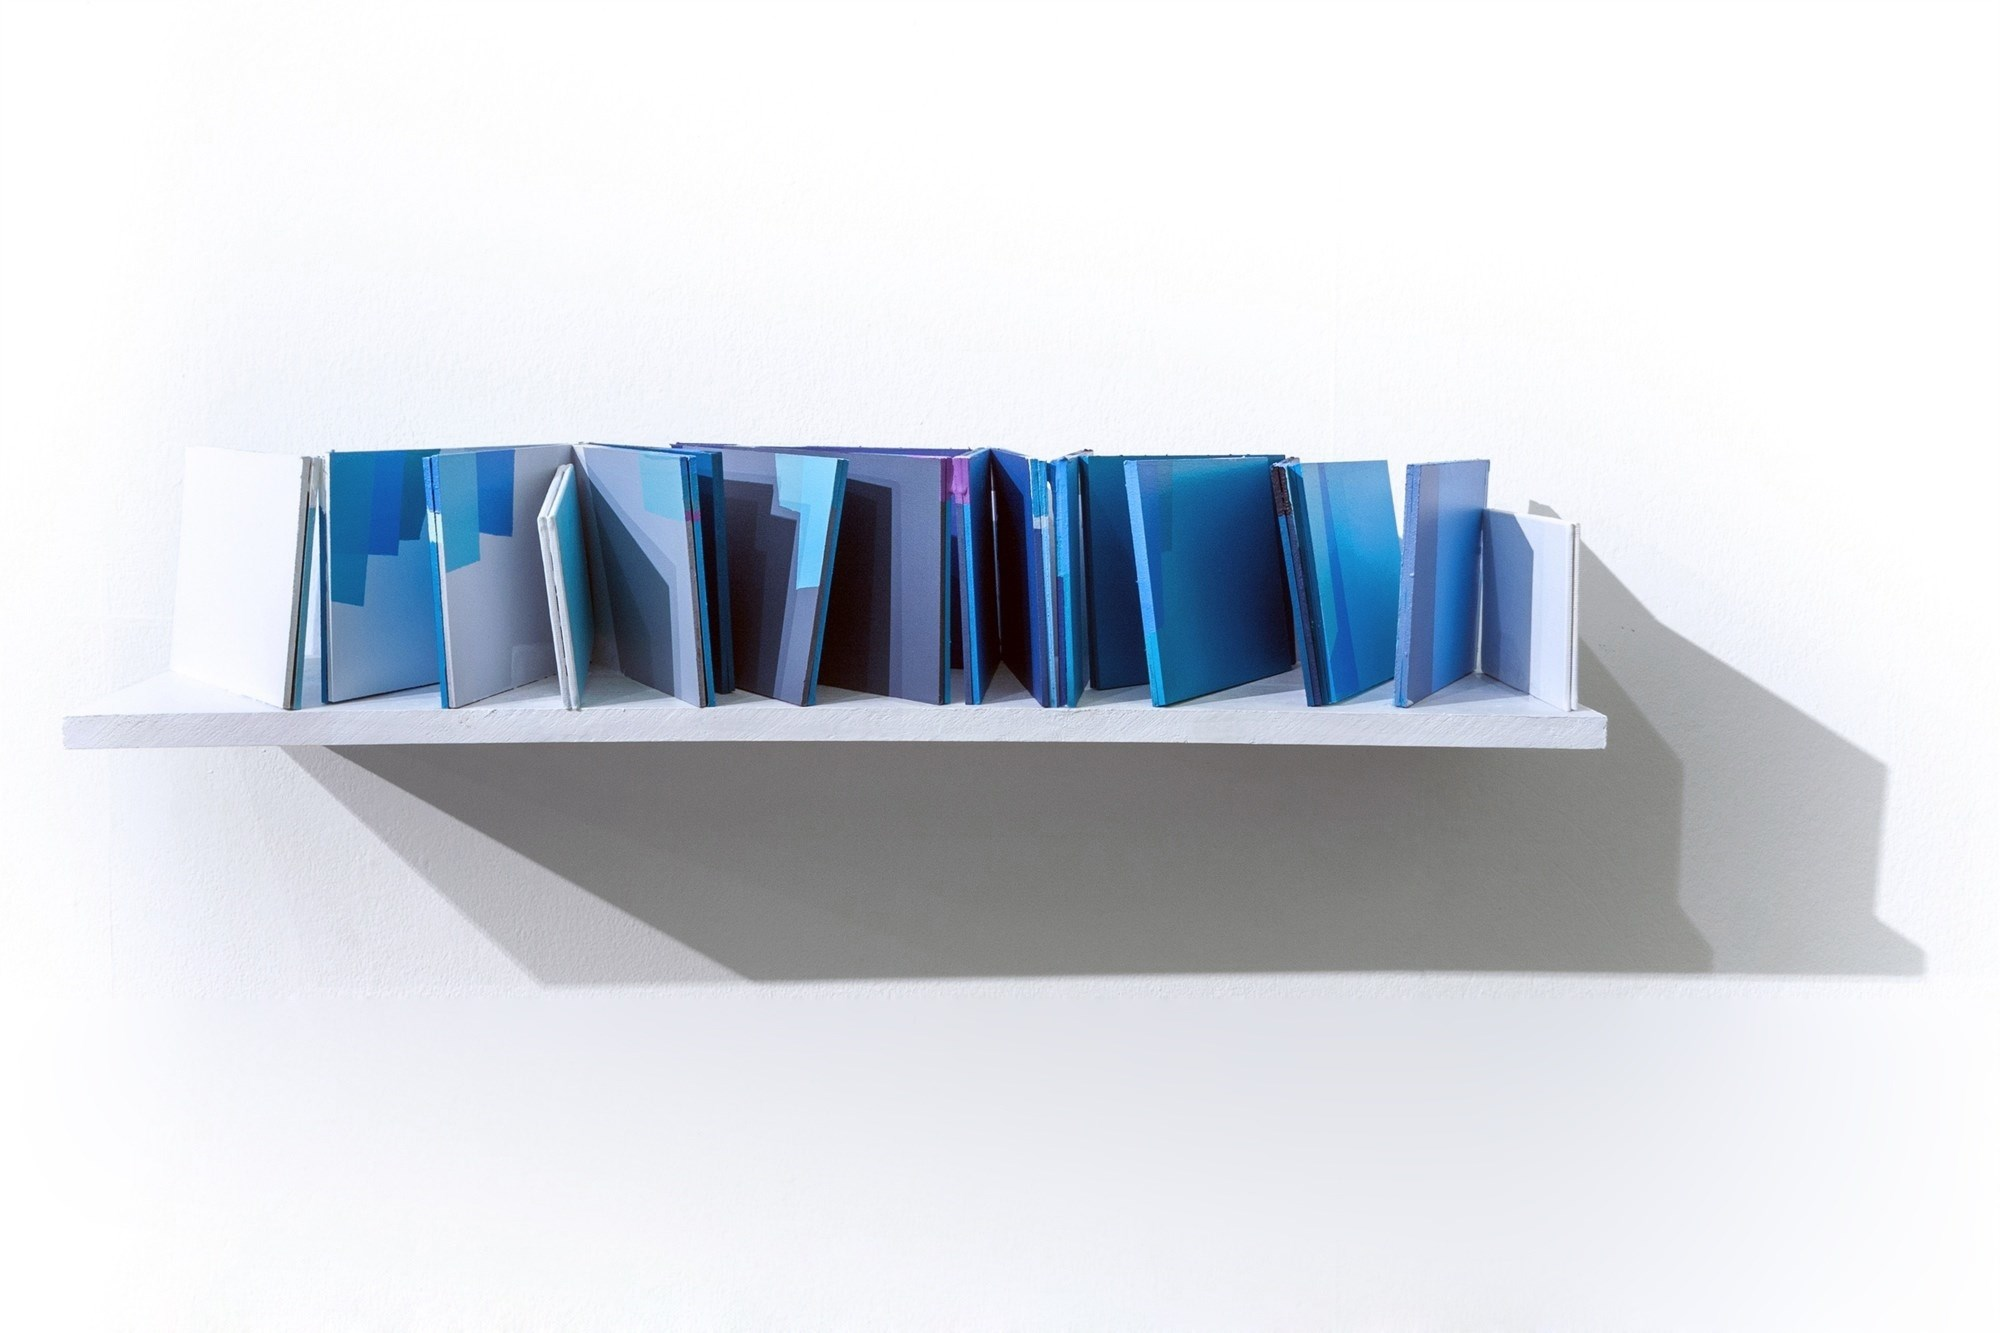 Maquete #6, original Abstract Acrylic Sculpture by Ana Pais Oliveira